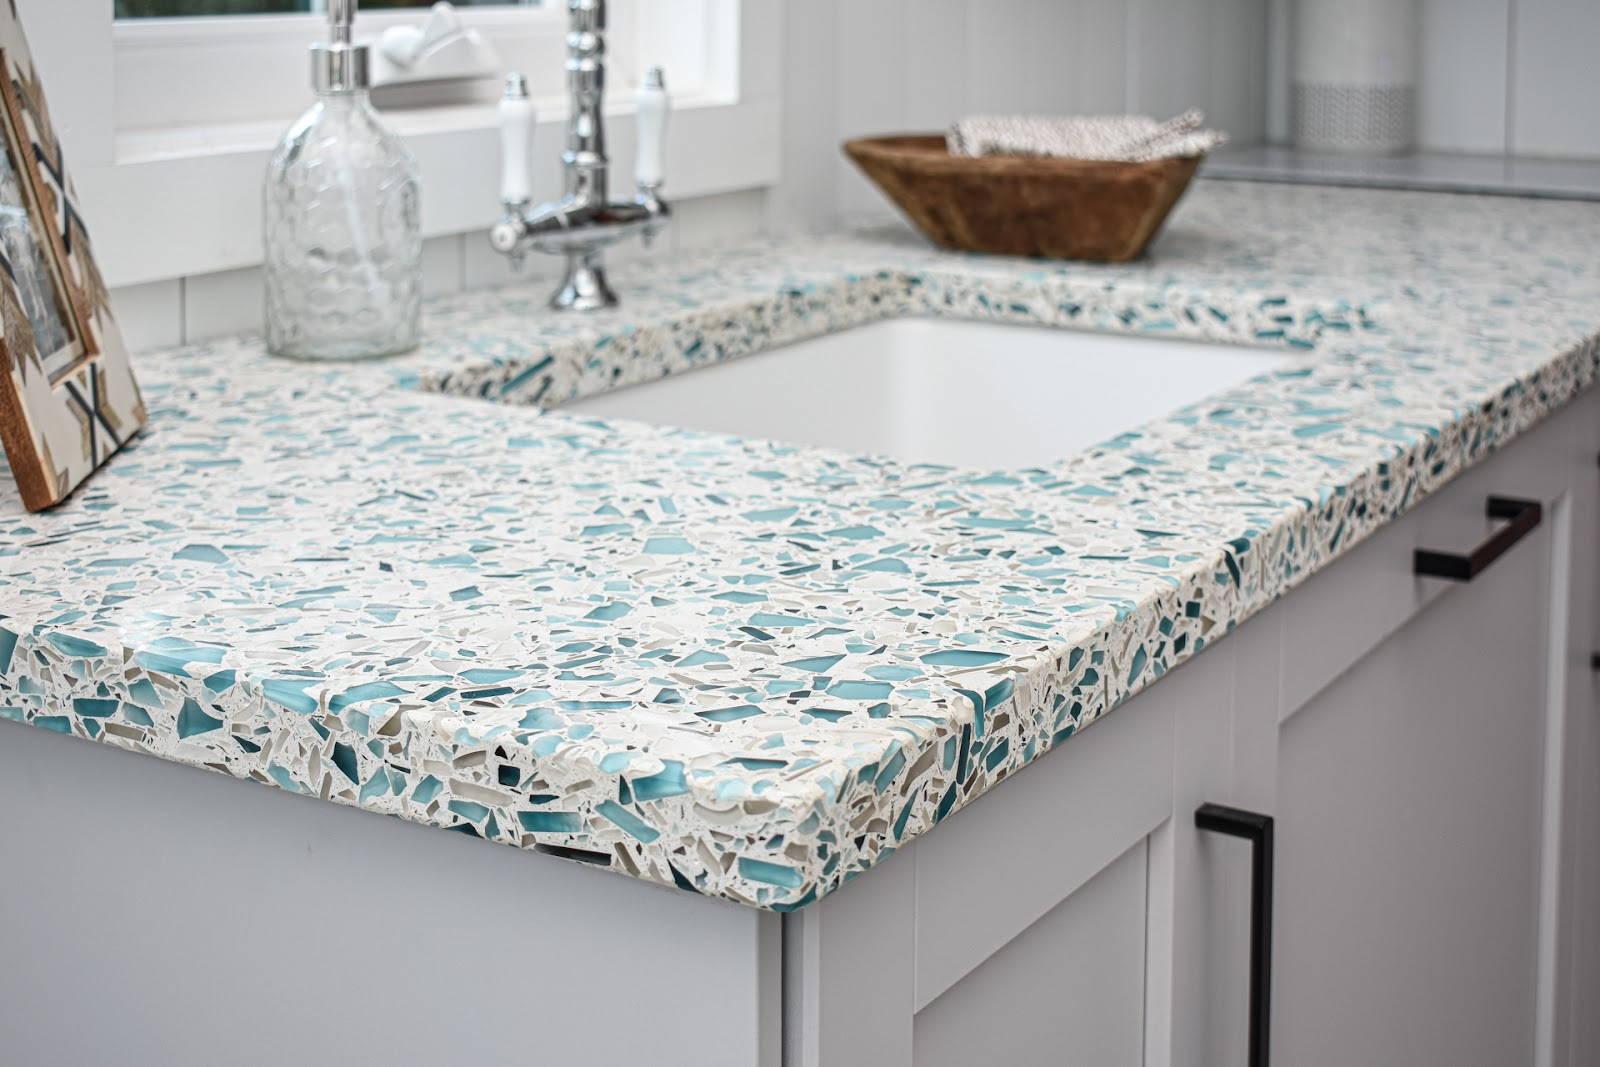 Vetrazzo-Floating-Blue-Recycled-Glass-Kitchen-Countertops-Tiny-Home